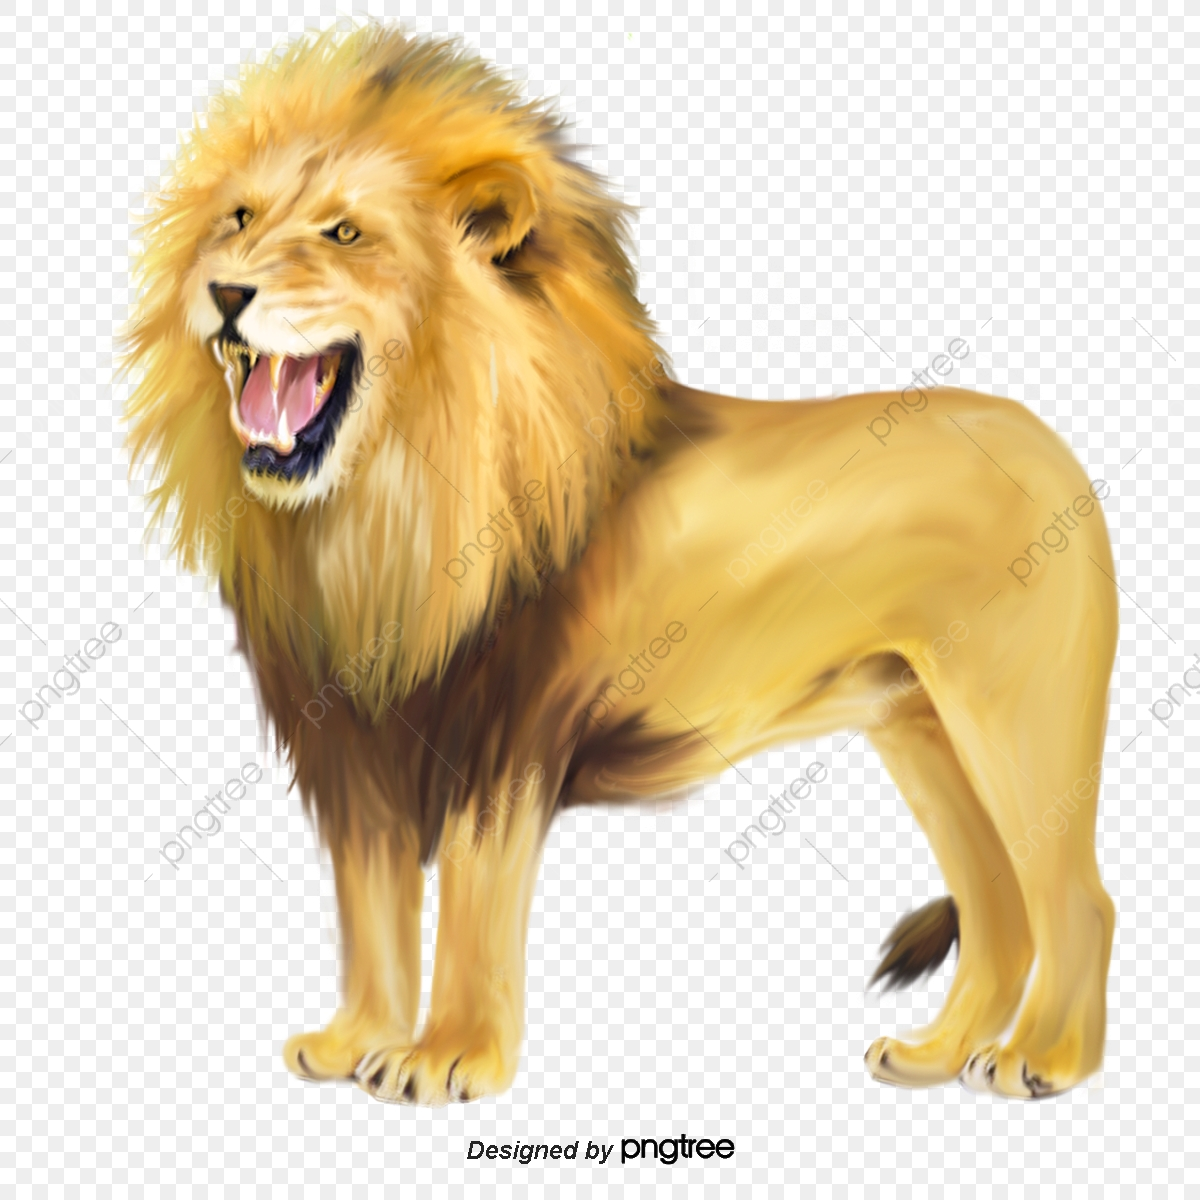 hight resolution of commercial use resource upgrade to premium plan and get license authorization upgradenow roaring lion